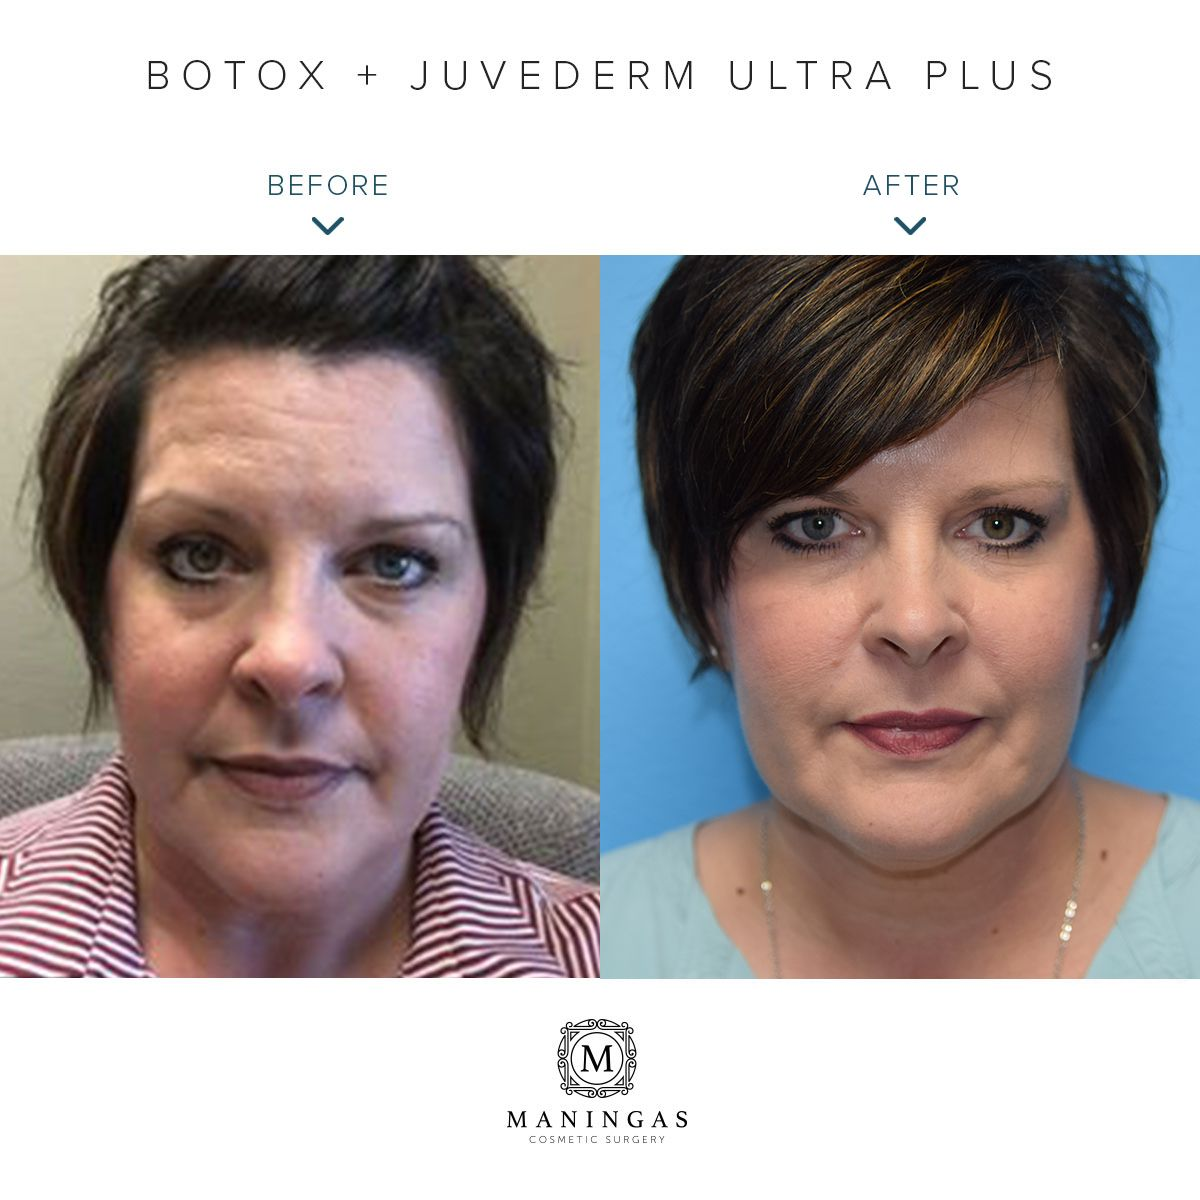 Botox to smooth lines and wrinkles in the forehead and